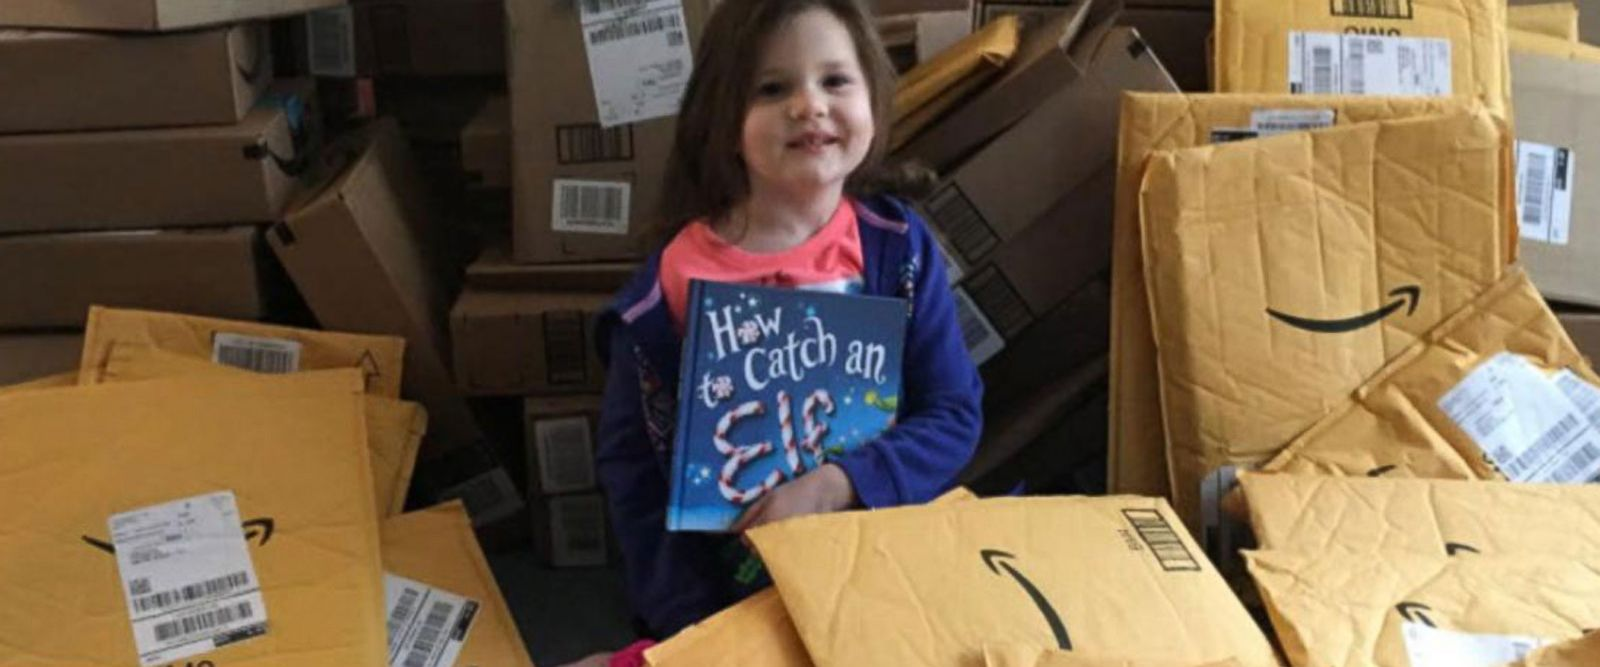 VIDEO: 4-year-old girl receives hundreds of books for Lena's Library while battling brain cancer